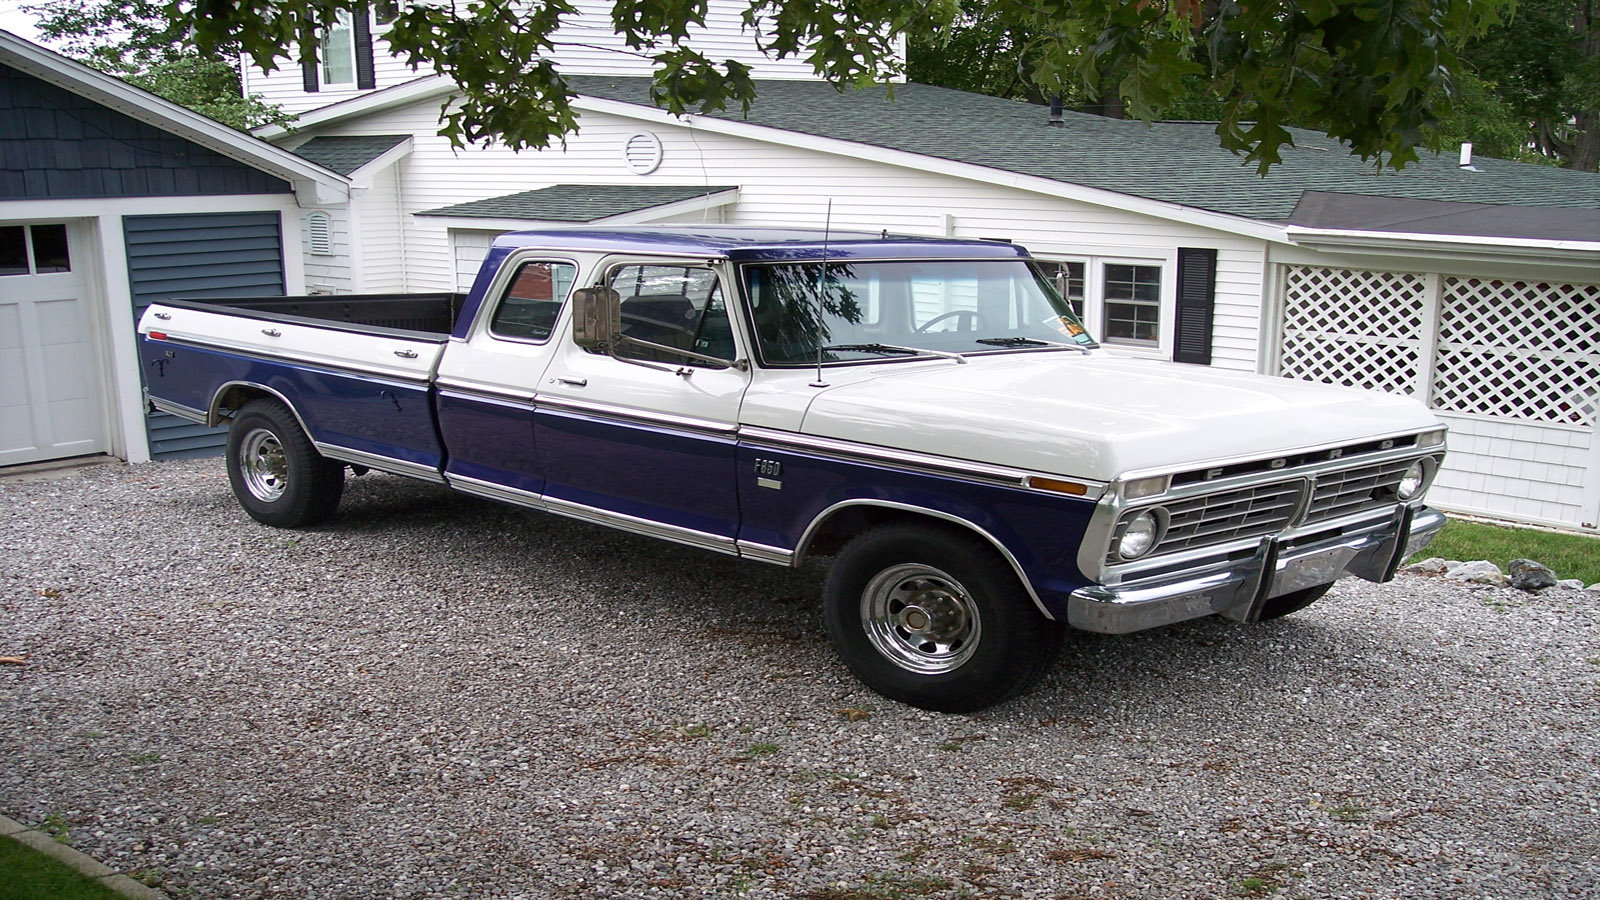 The 1974 SuperCab